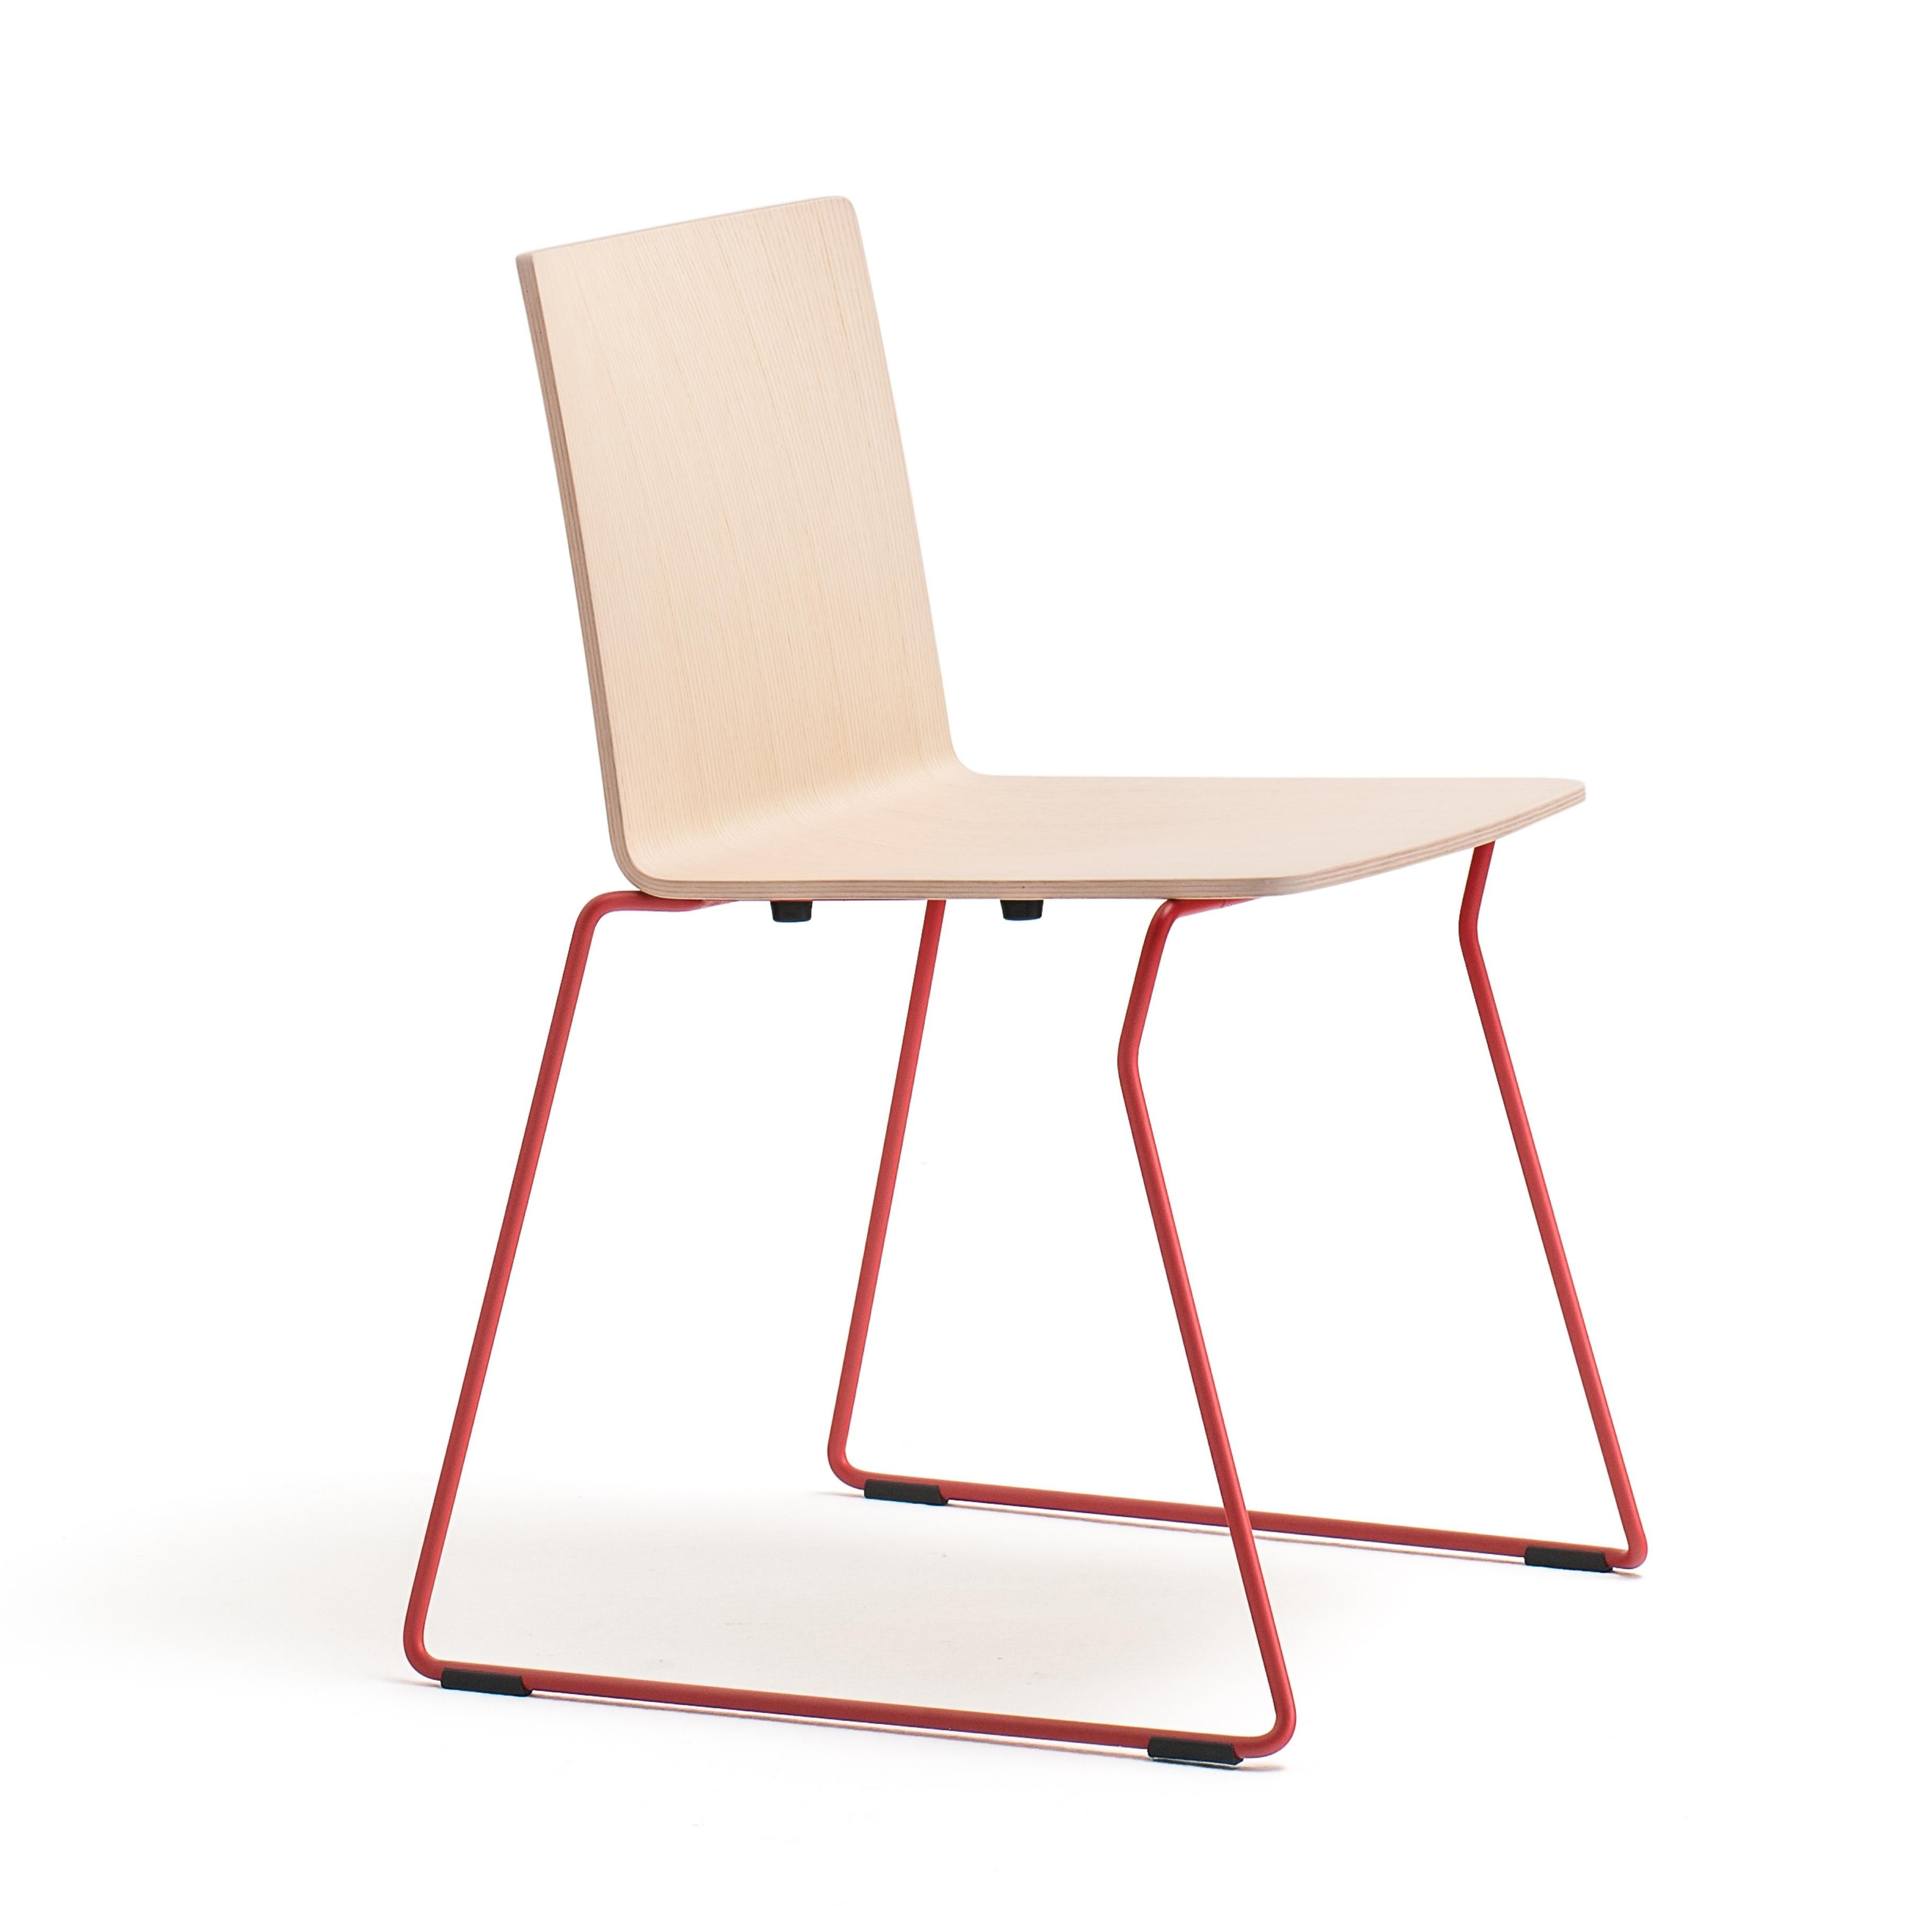 Osaka Metal Chair, With Ash Plywood Shell And Steel Rode Sled Frame,  Features The Functionality Of The Collection. The Outcome Is A Great  Ergonomics And An ...